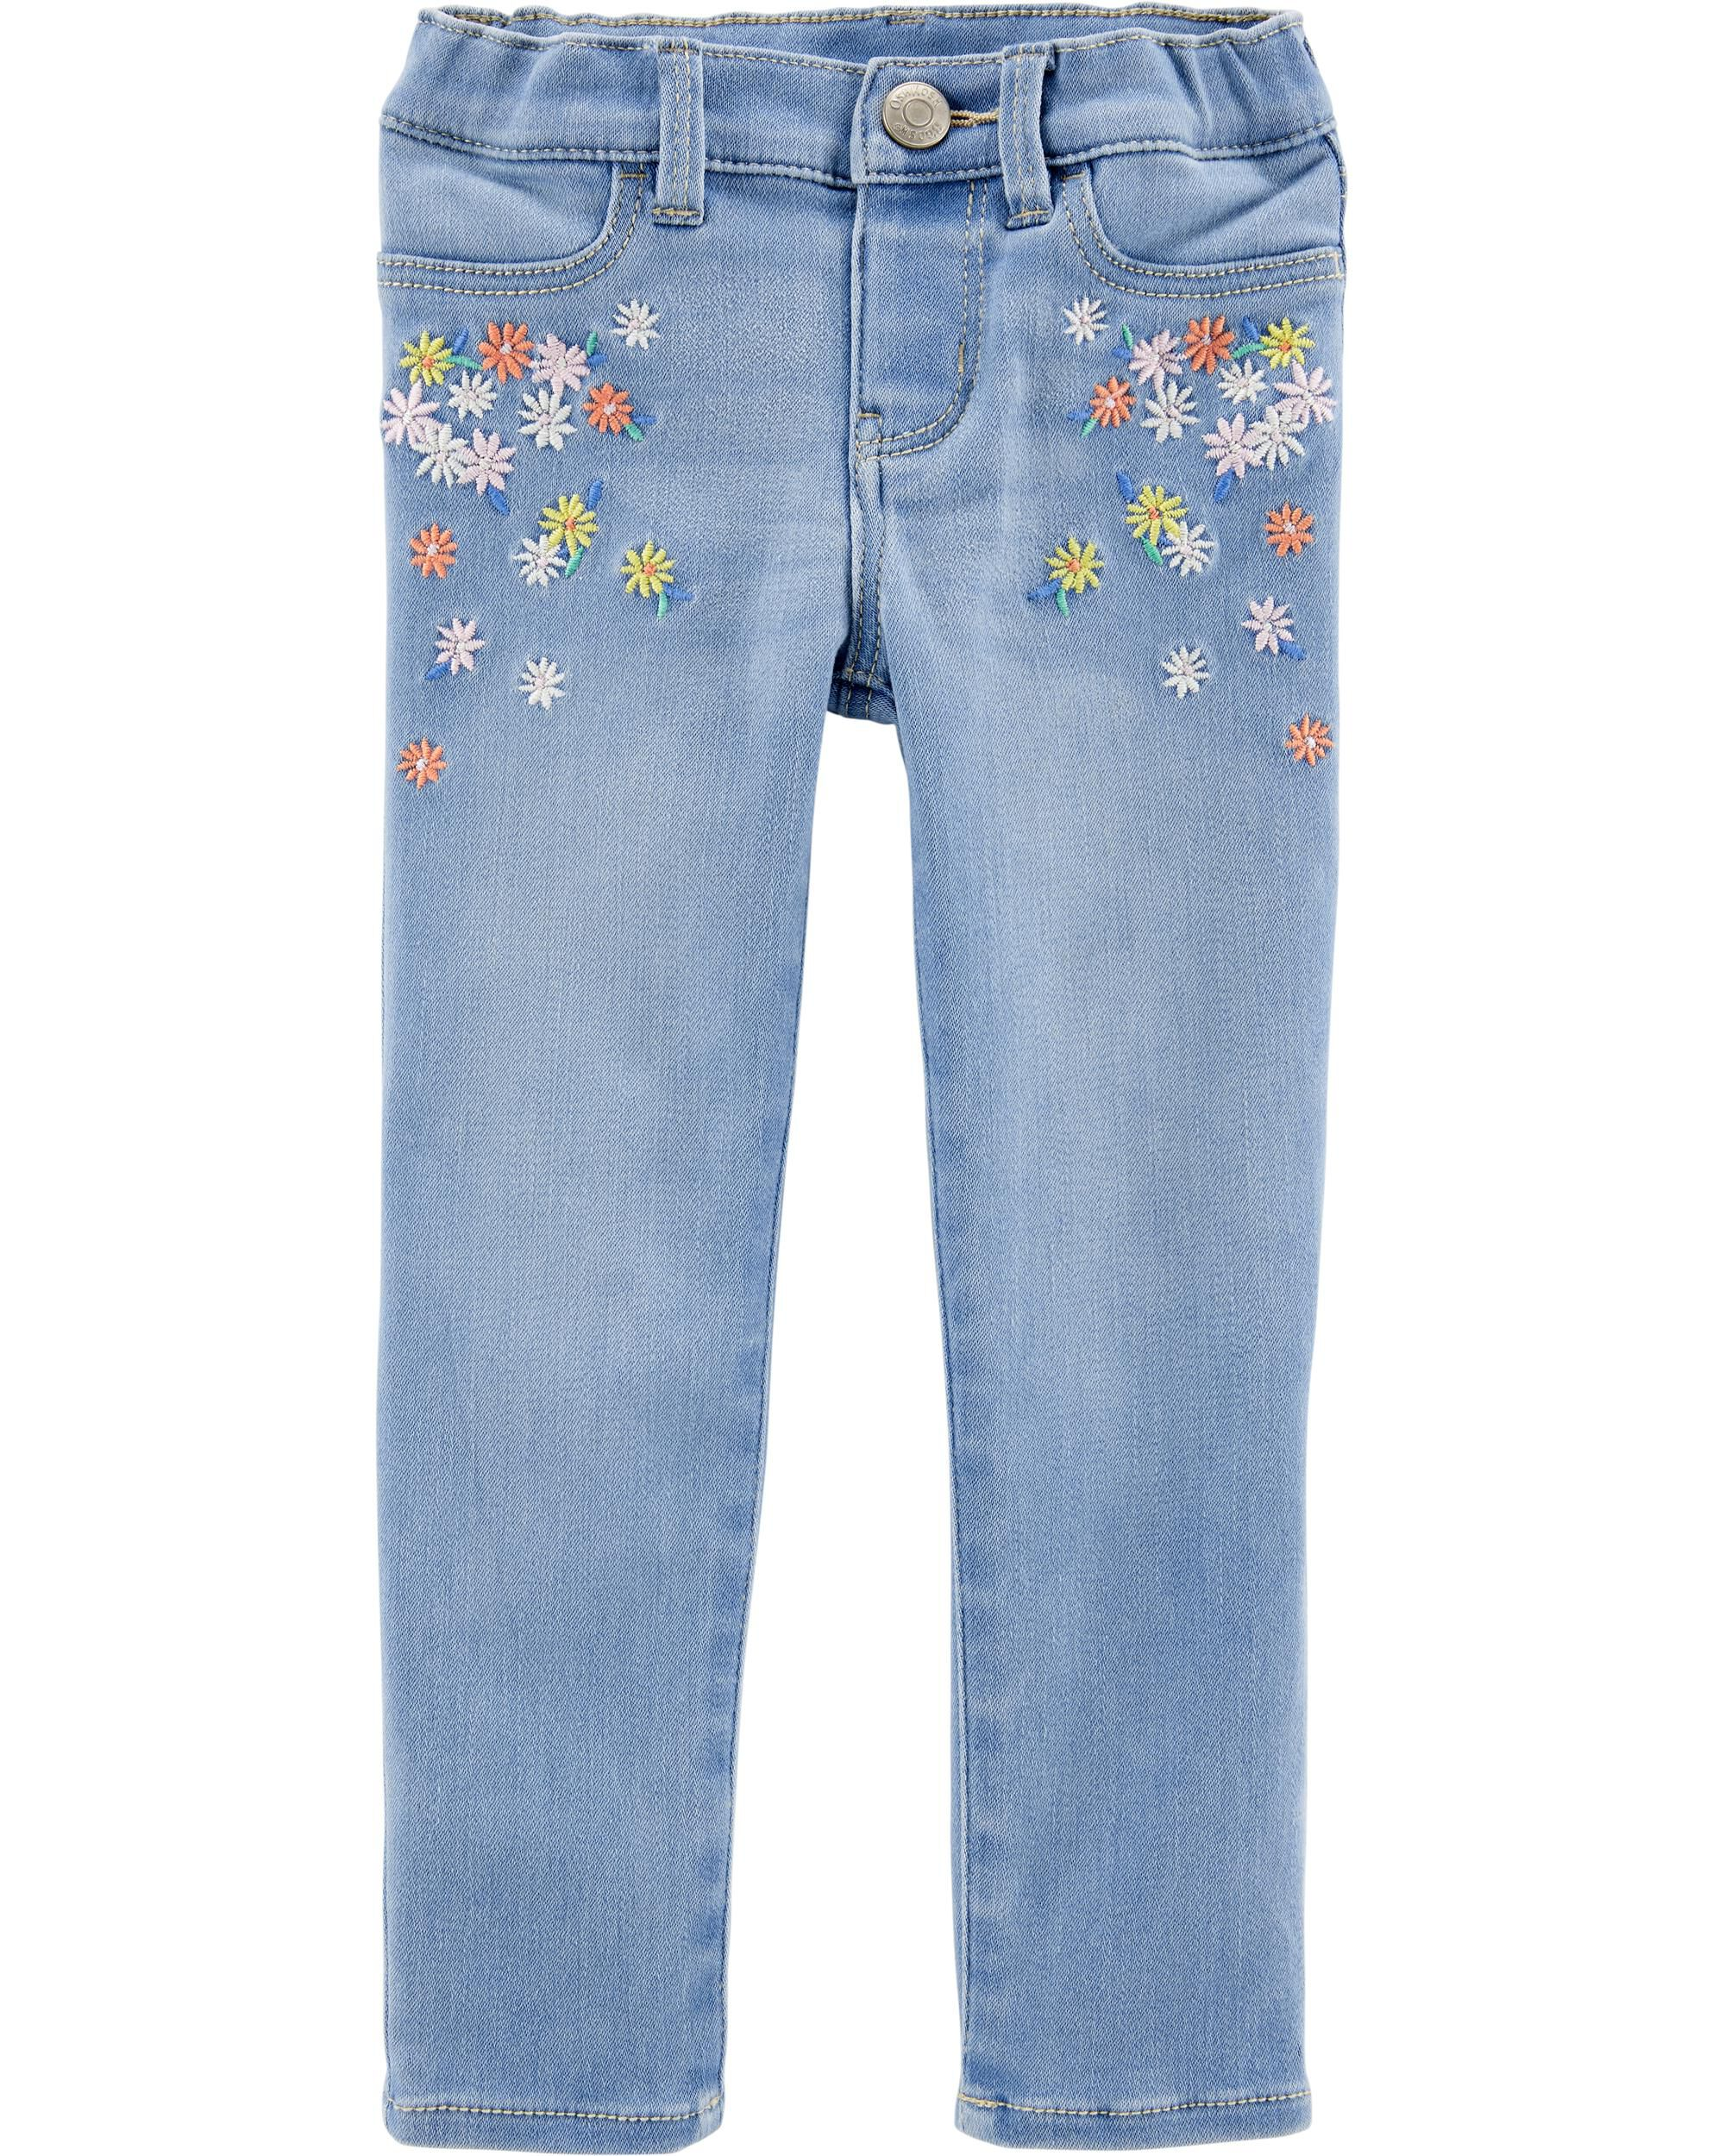 Embroidered Floral Jeggings